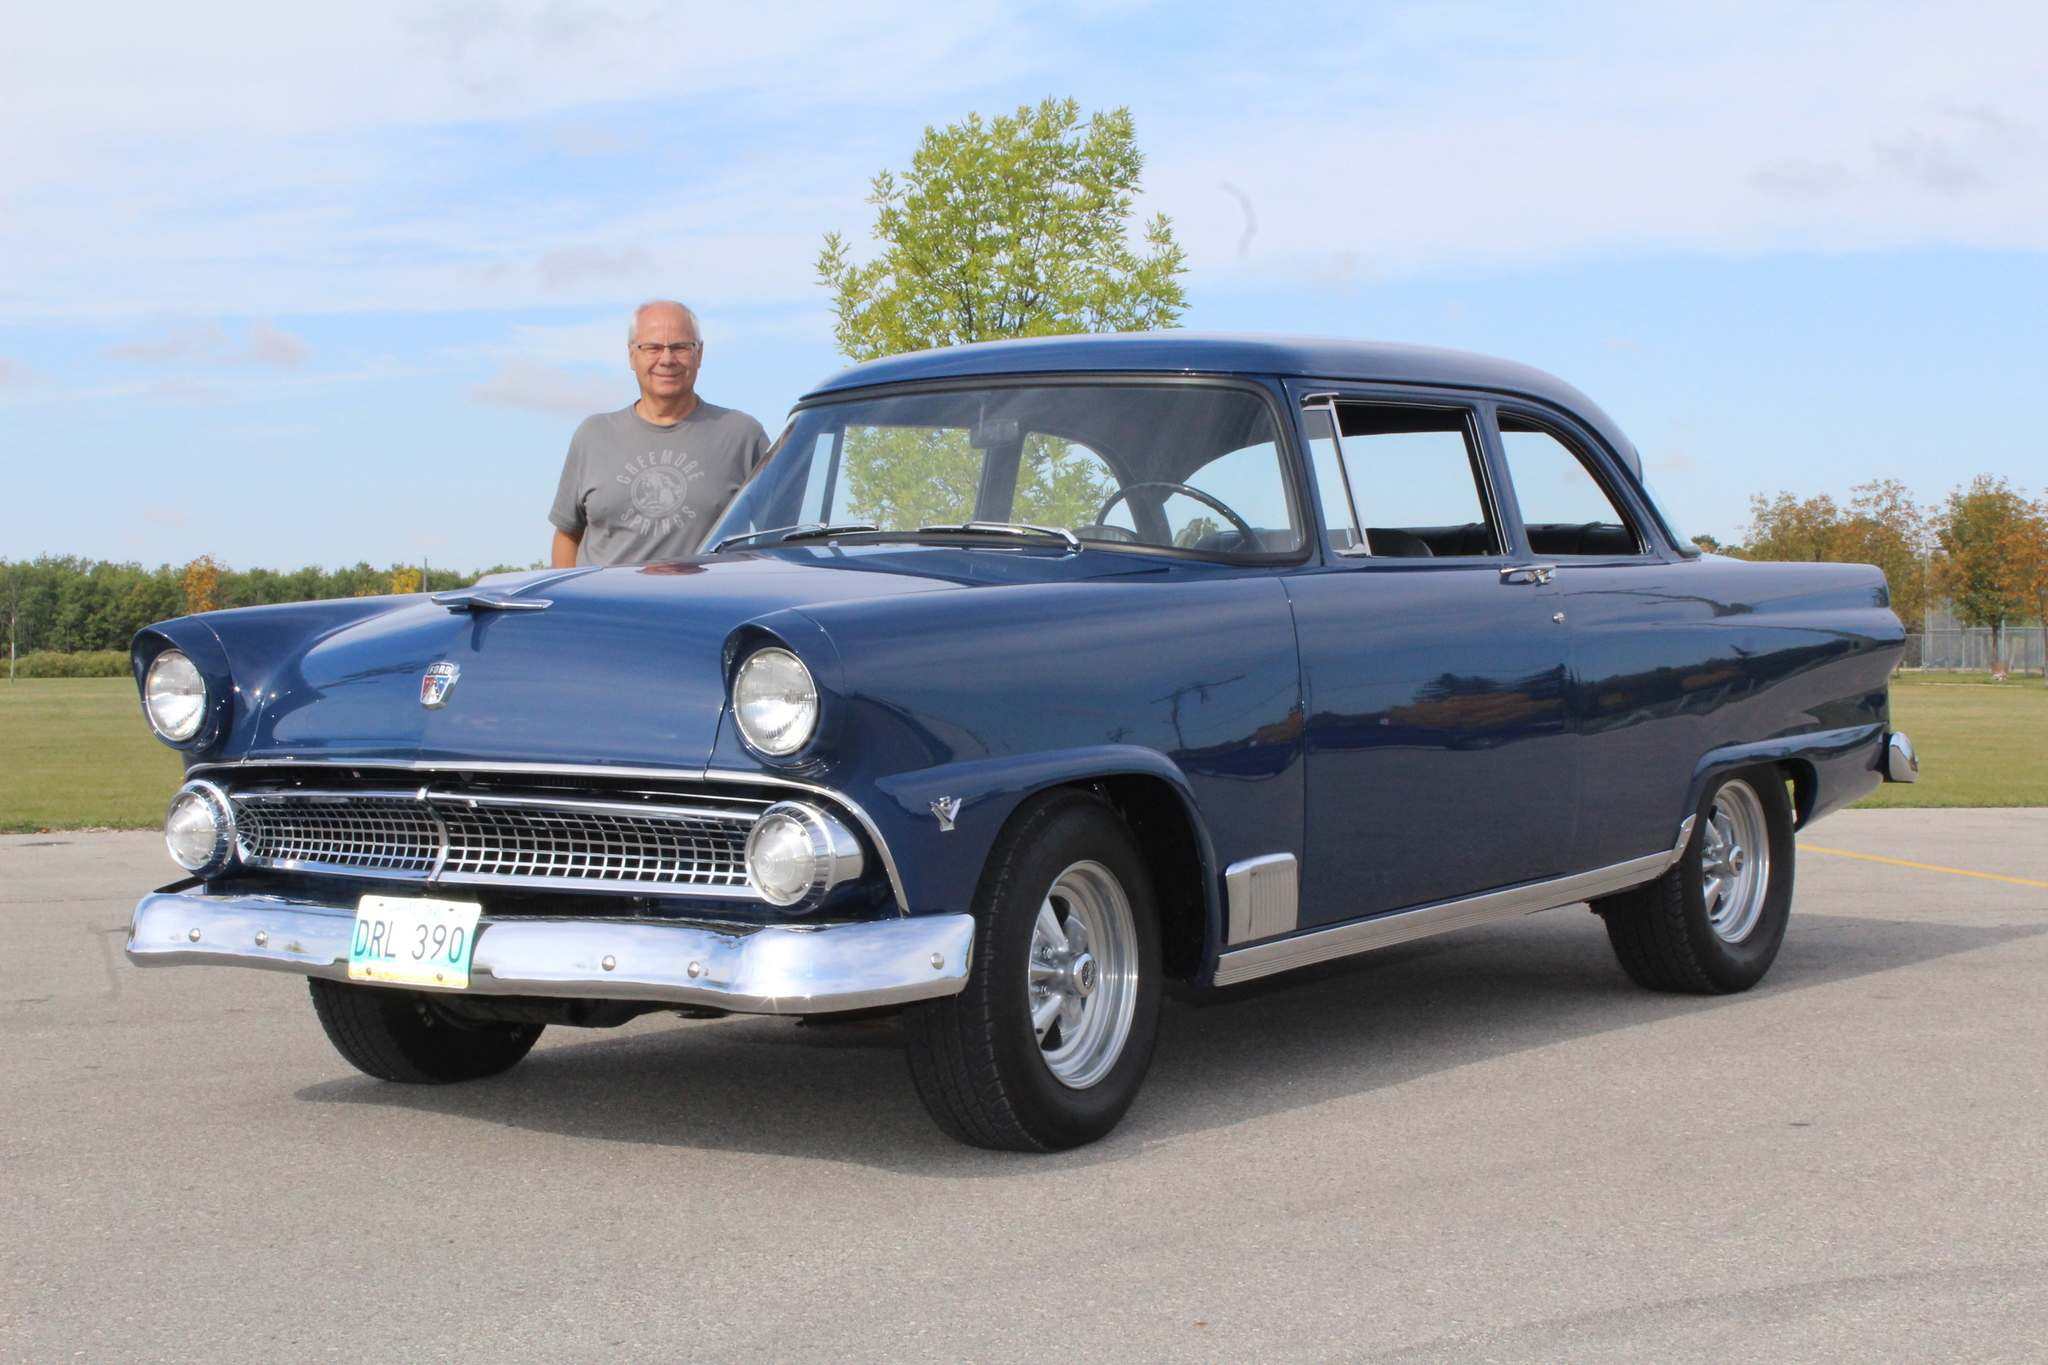 Wally Mazurek bought this 1955 Ford Mainline Tudor sedan in Landis, Sask., in 1973. It has been a recurring project of his ever since. (Larry D'Argis / Winnipeg Free Press)